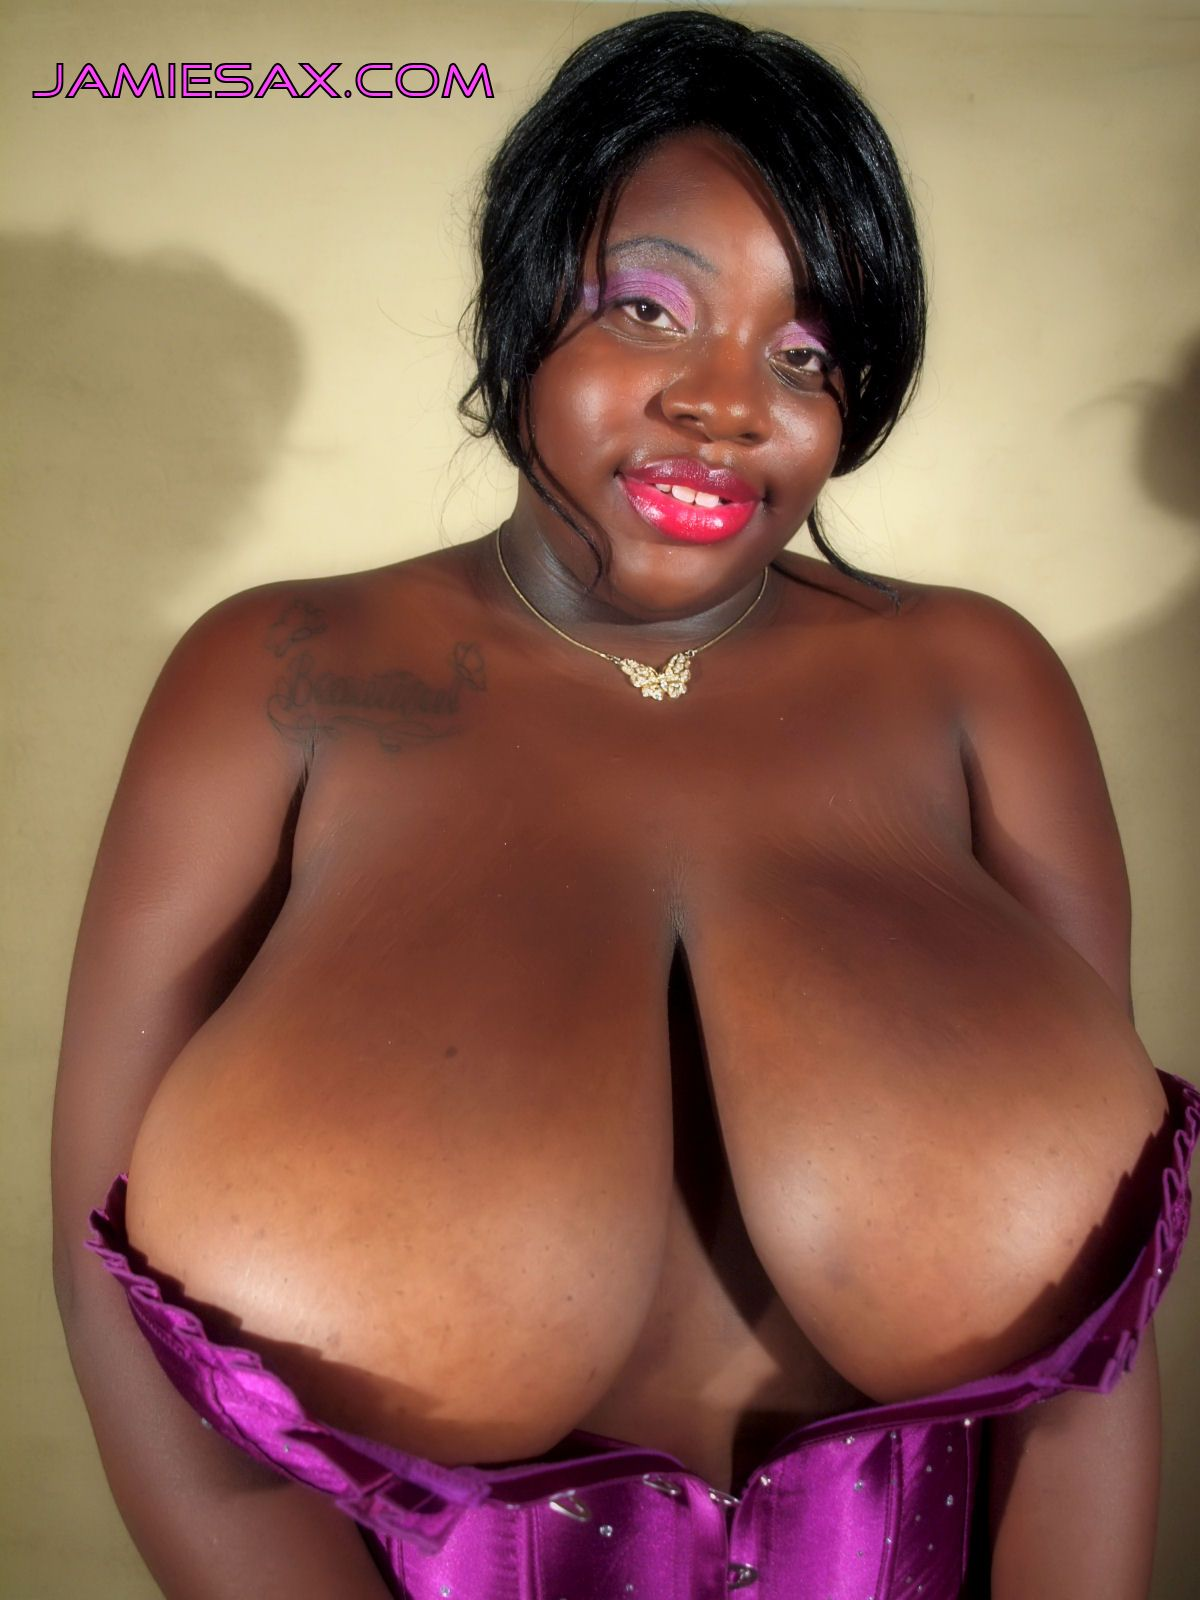 Black woman with big boob for